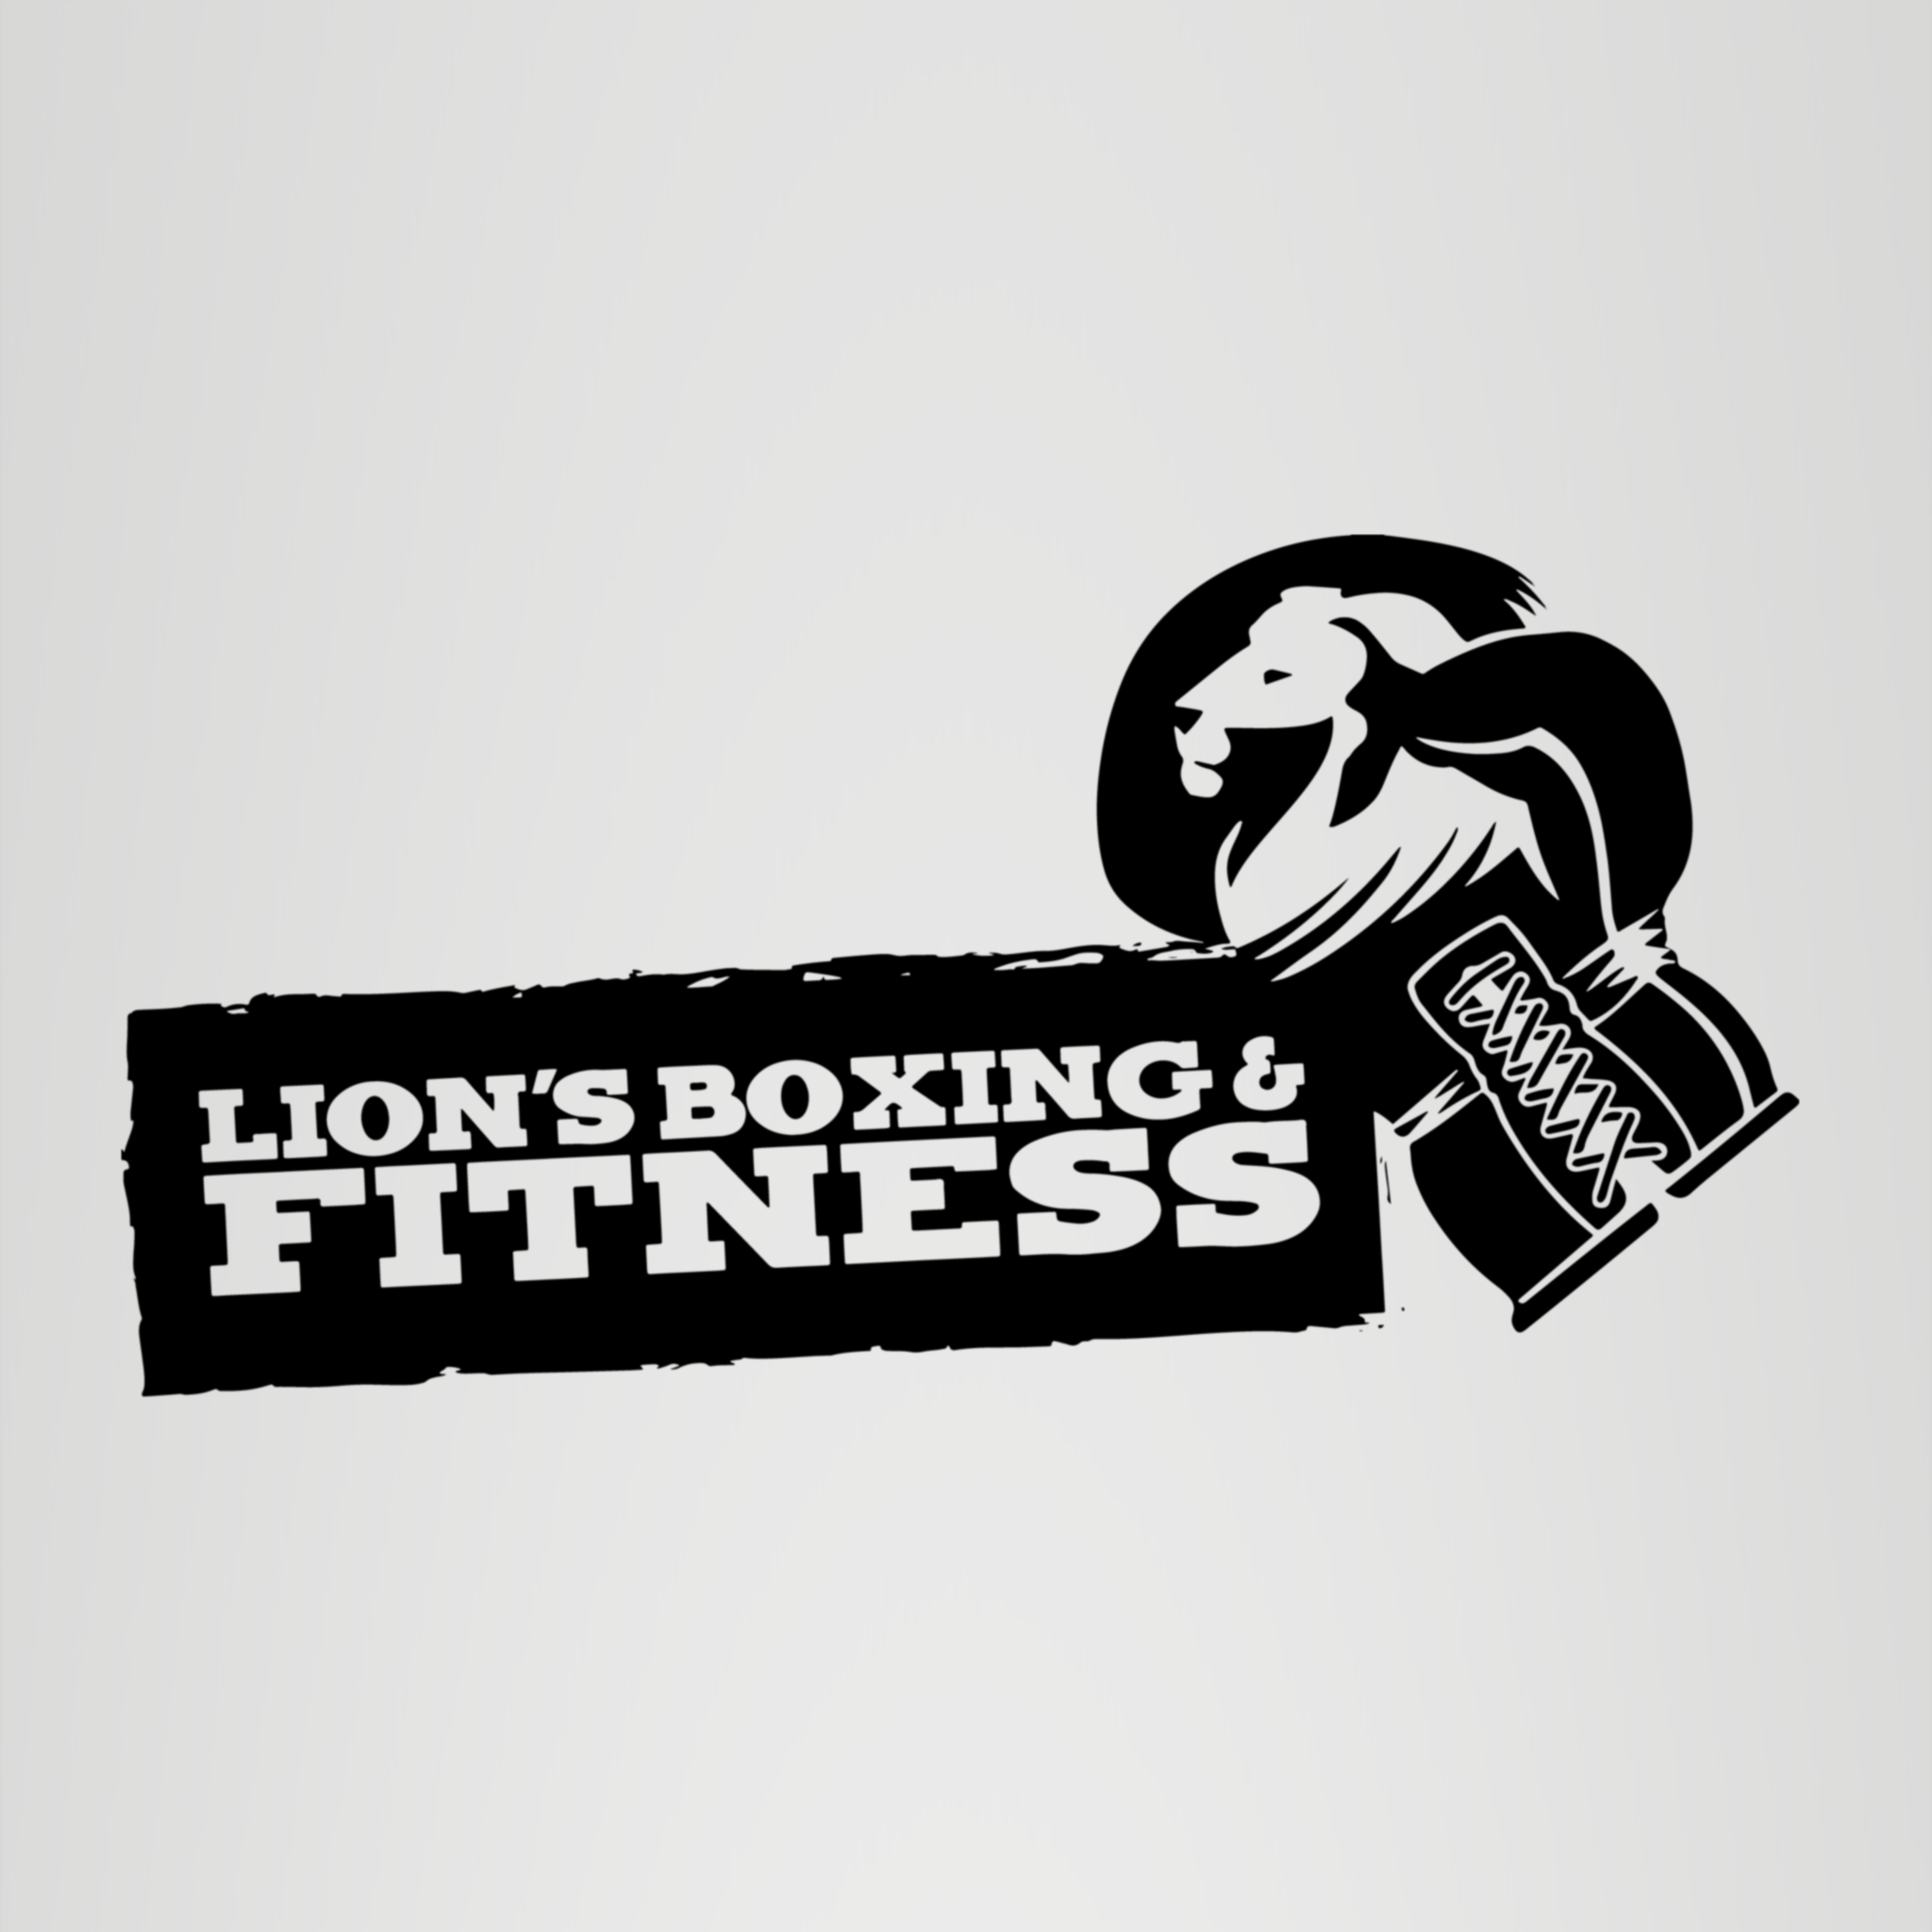 logo-design-lions-boxing-fitness.png